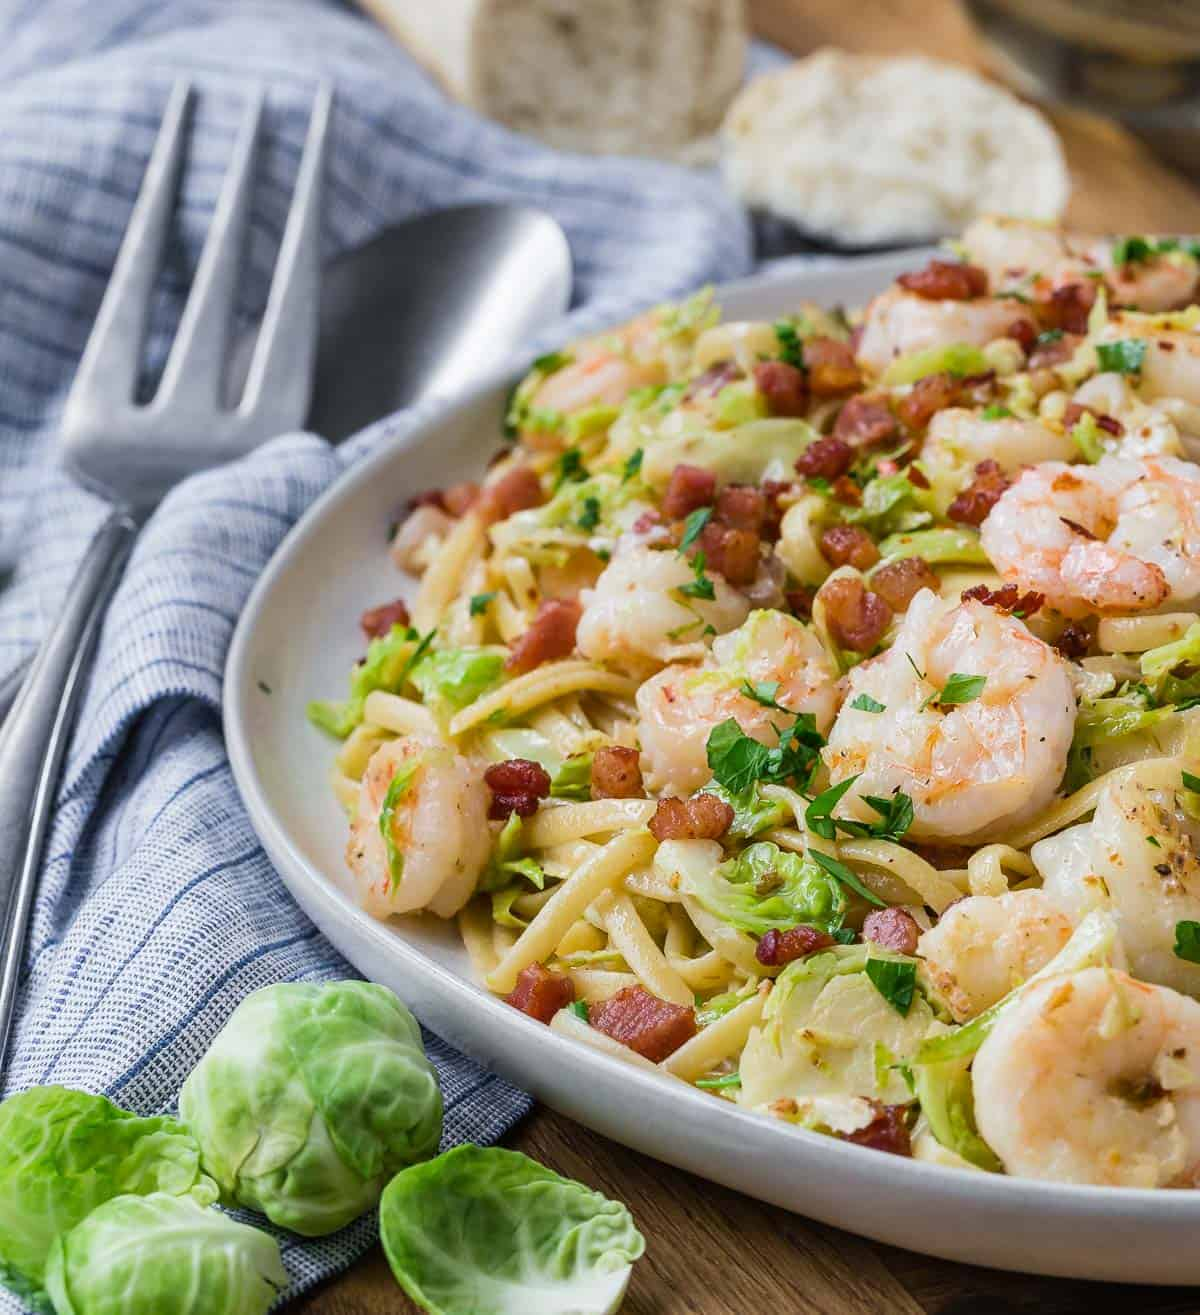 Large platter of pasta, shrimp, brussels, pancetta, and more.